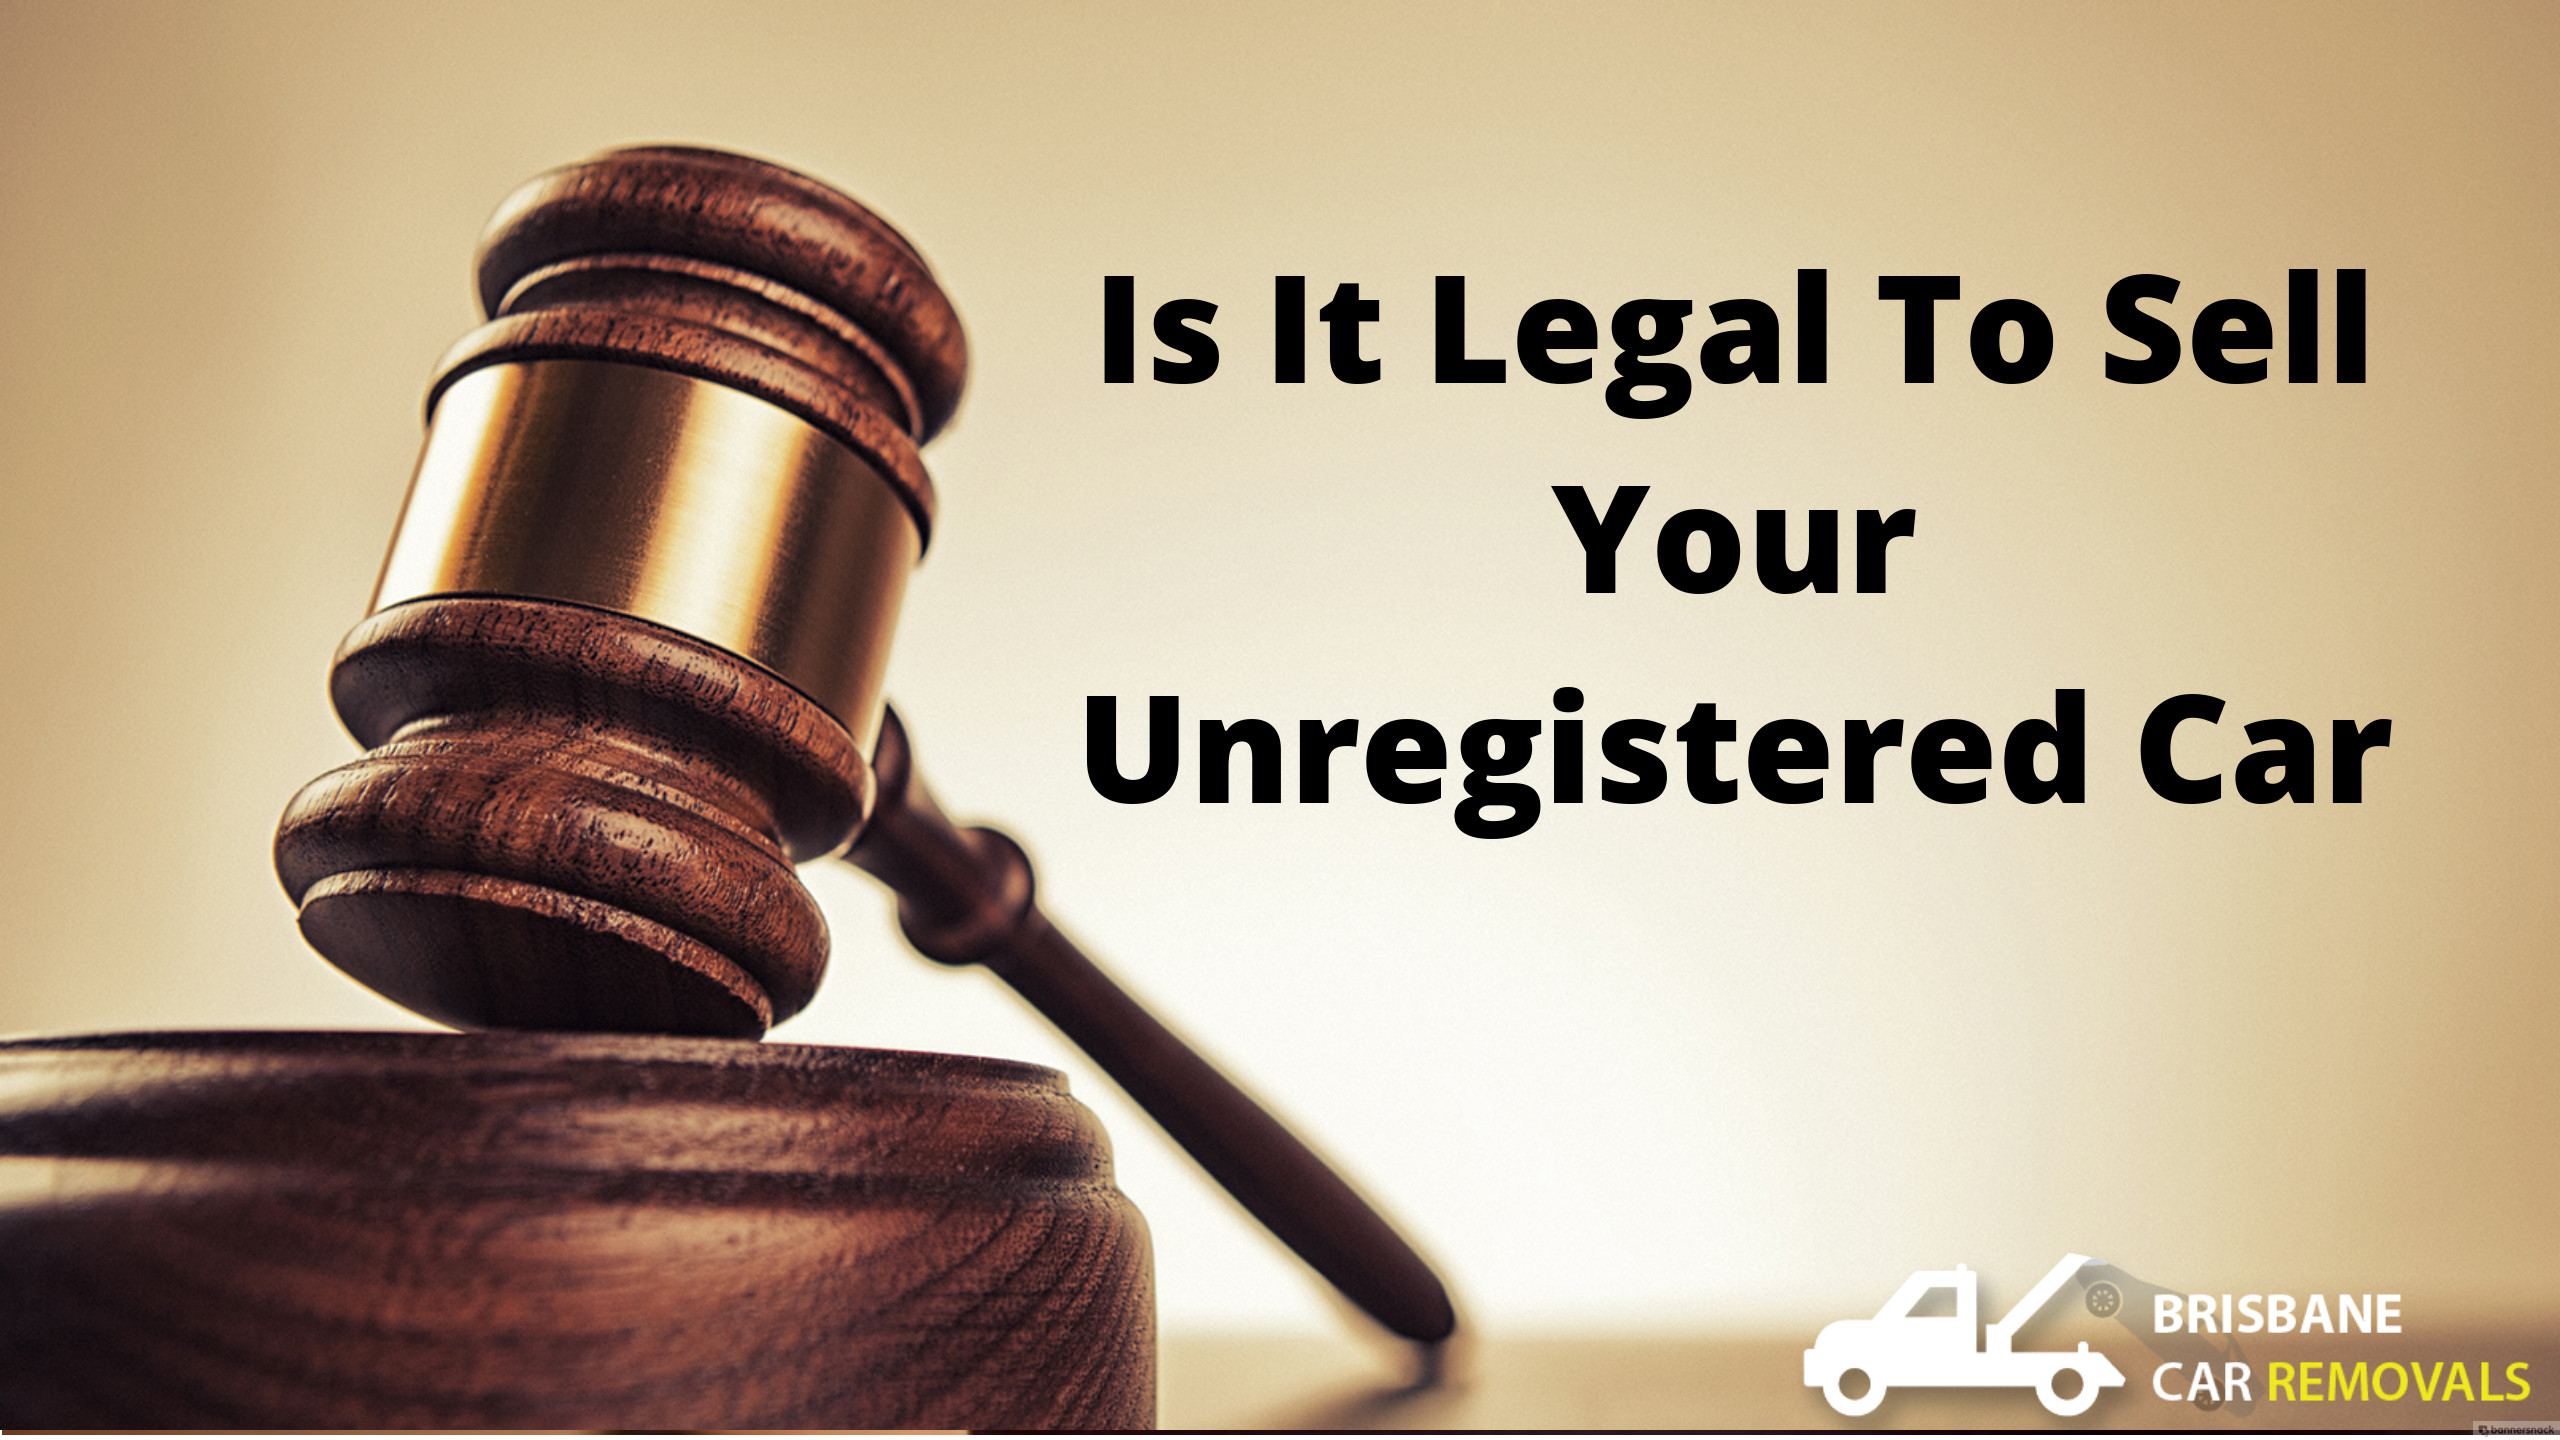 Is It Legal To Sell Your Unregistered Car